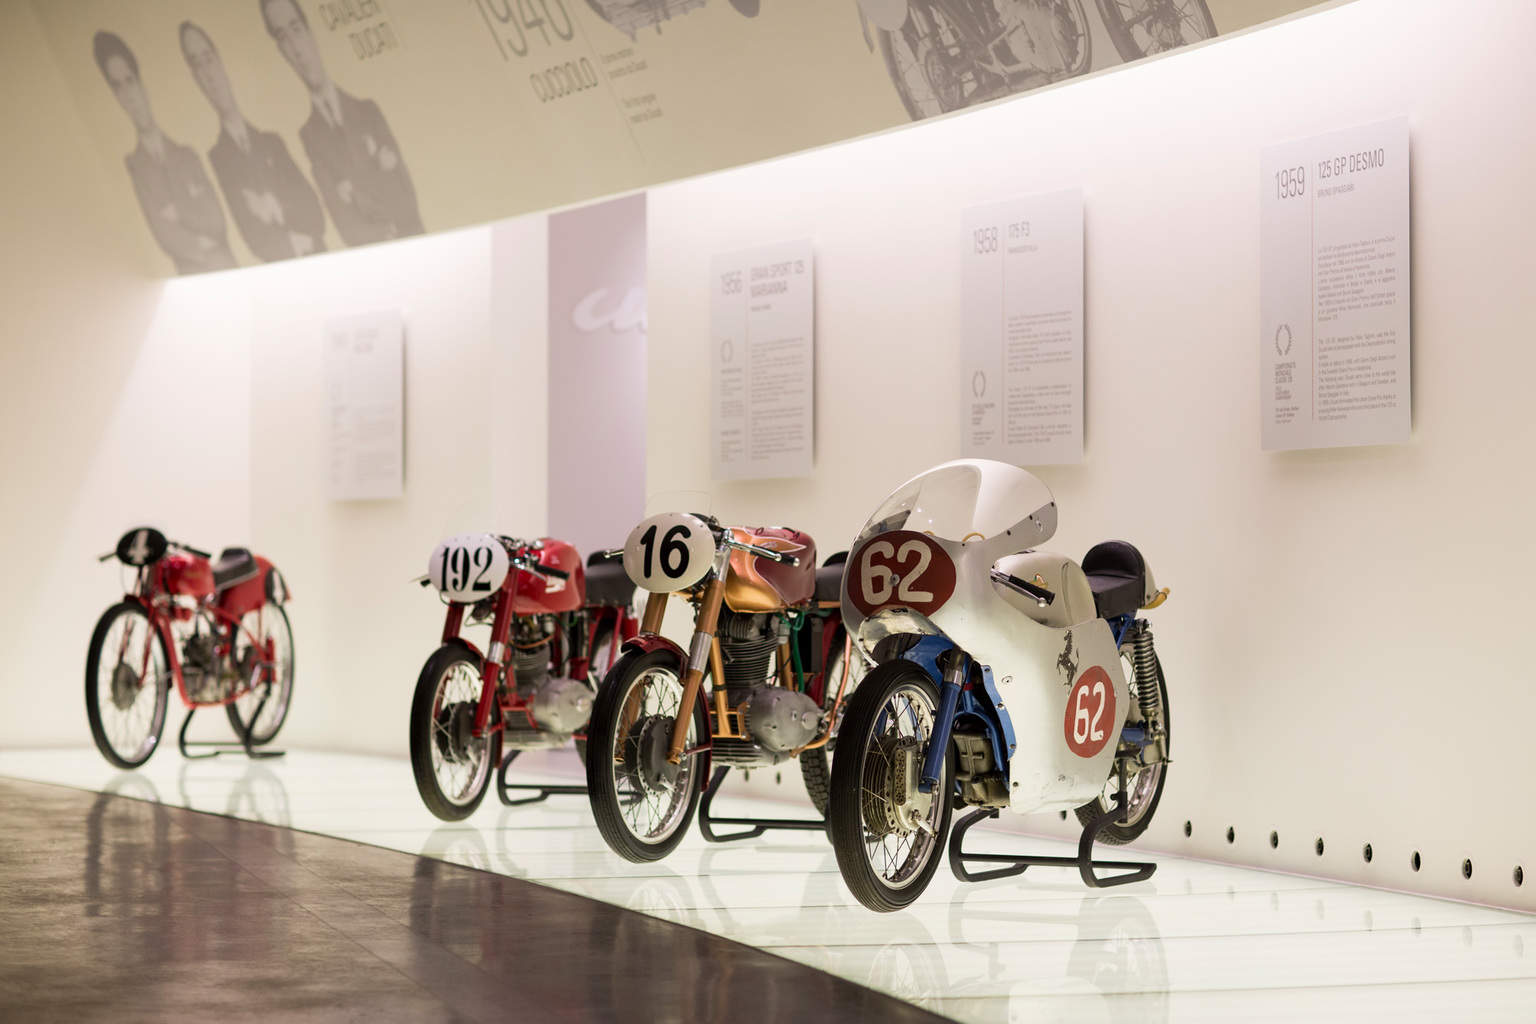 World Ducati Week museum